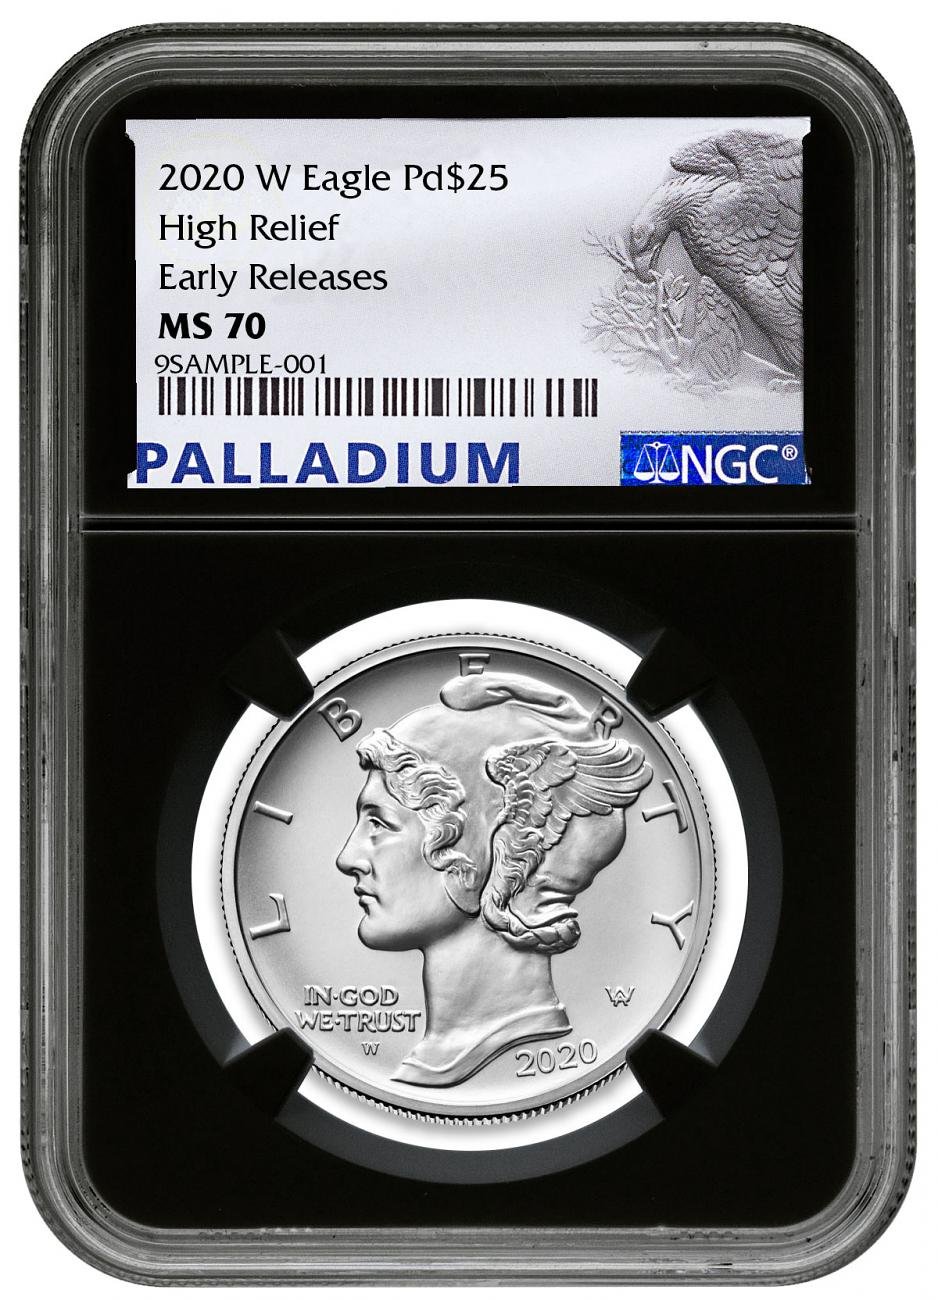 2020-W 1 oz High Relief Palladium Eagle Burnished $25 Coin NGC MS70 ER Black Core Holder Palladium Eagle Label